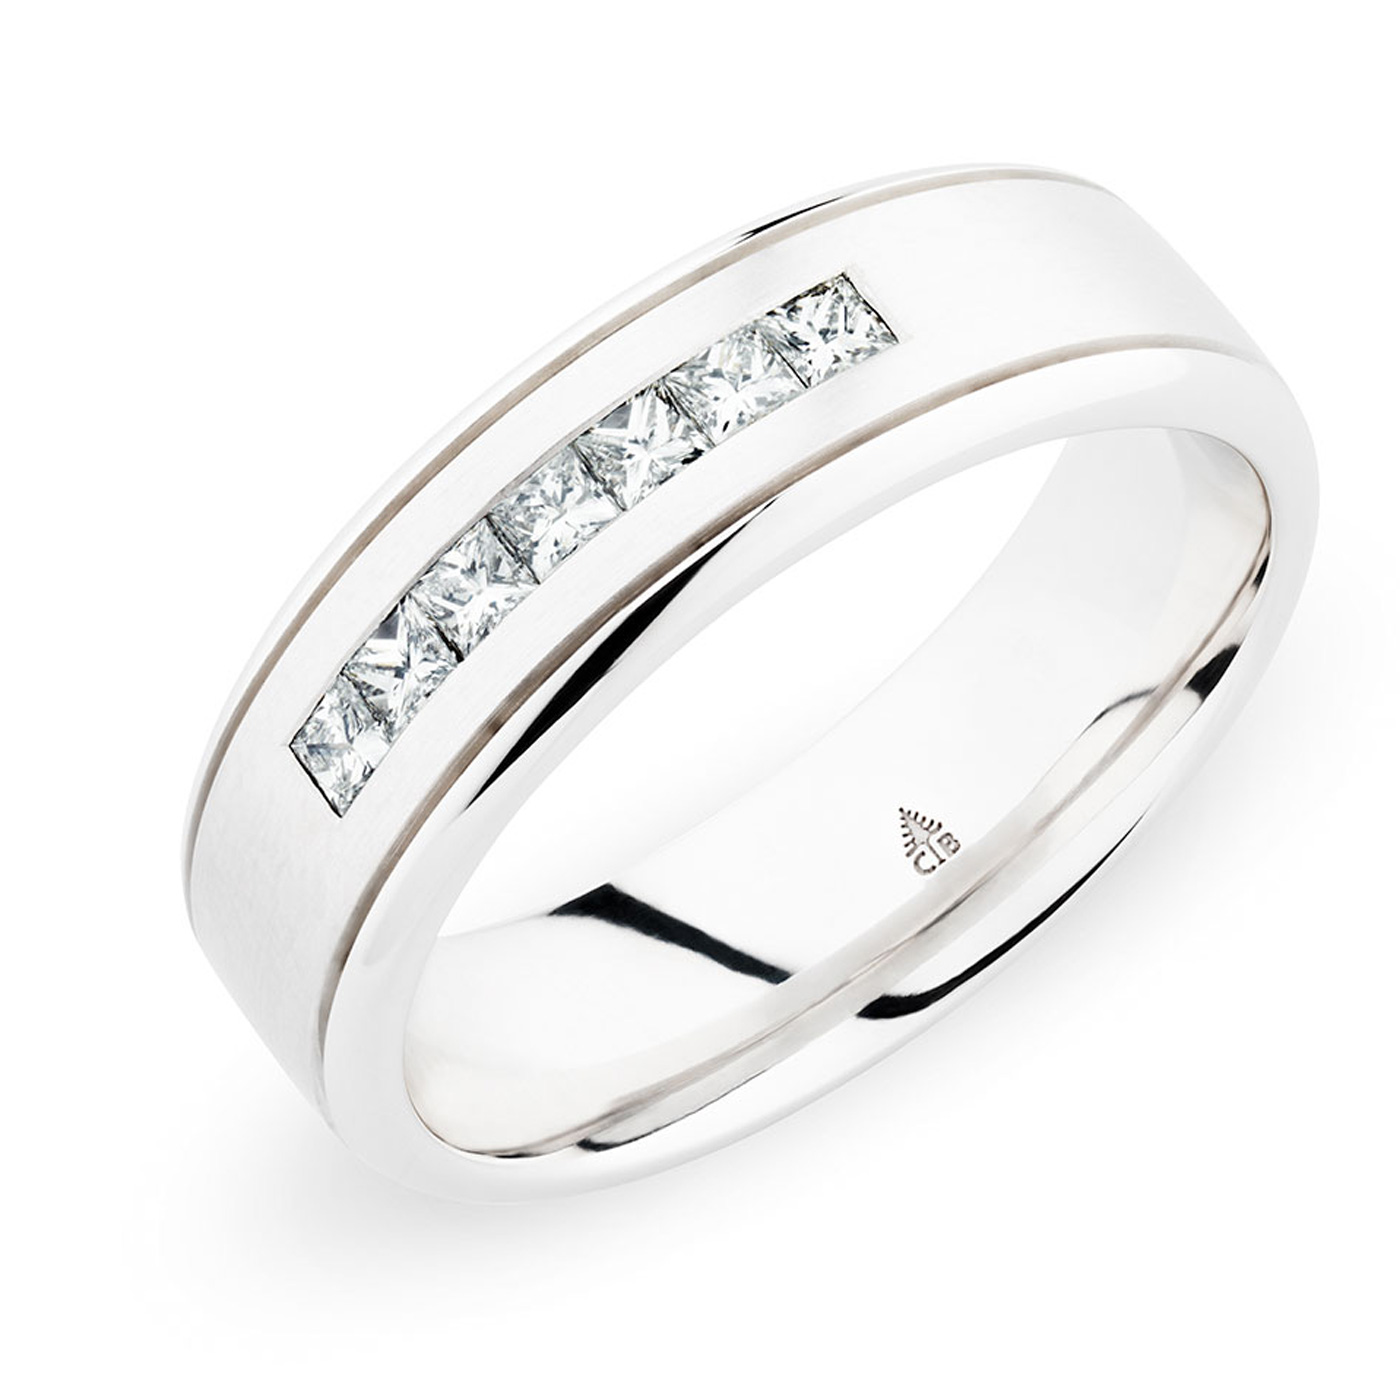 244743 christian bauer 14 karat diamond wedding ring for Christian bauer wedding rings